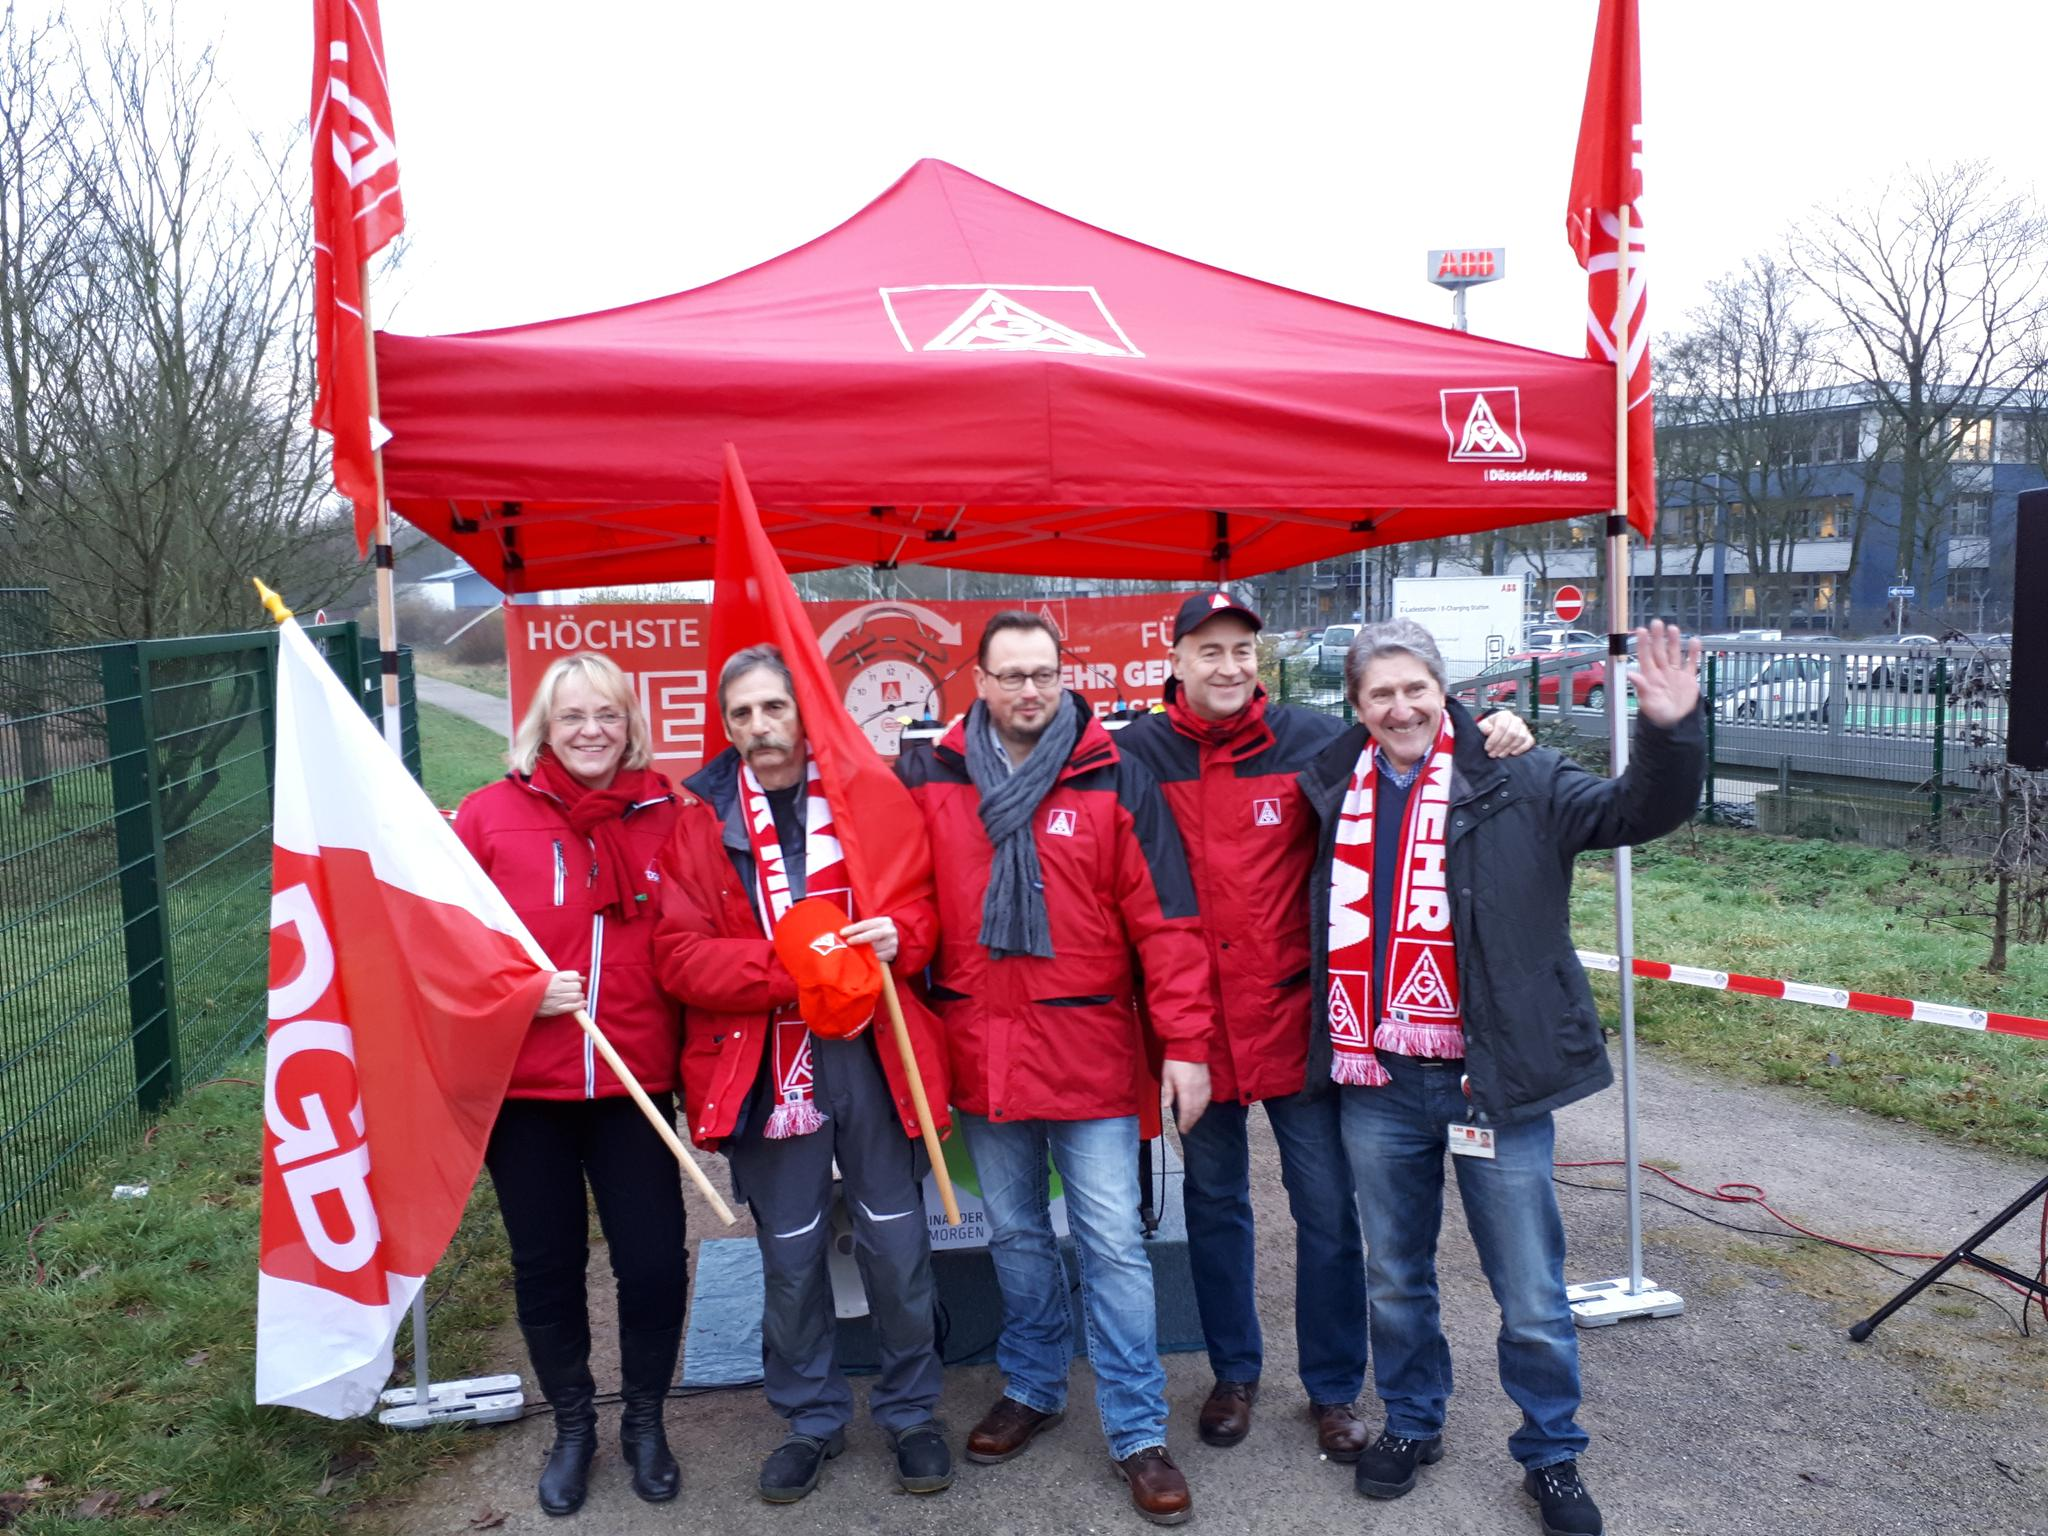 Warnstreik bei ABB in Ratingen